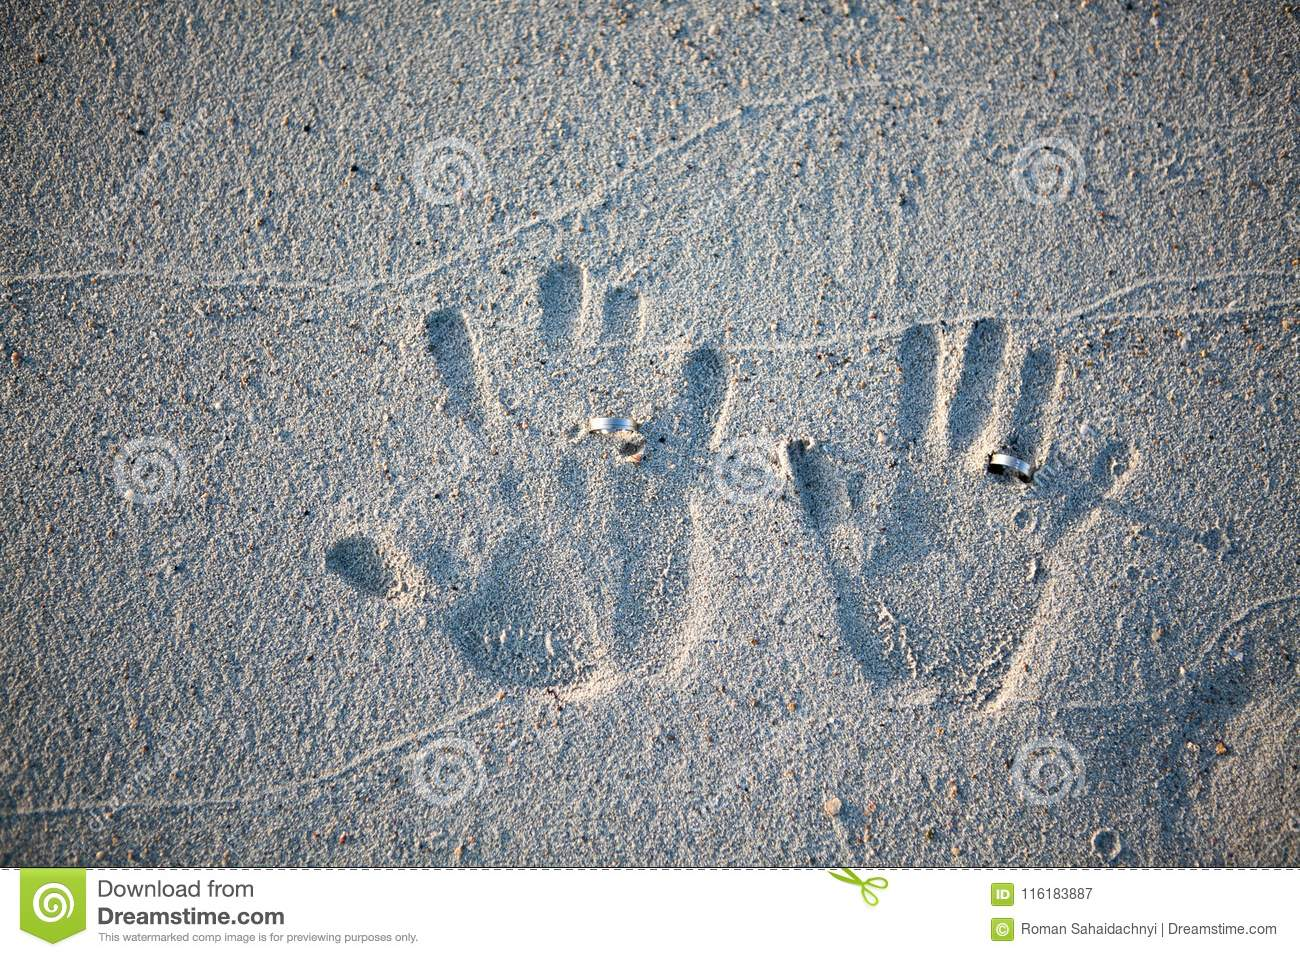 Finger prints of the bride and groom with wedding rings on the sand of the beach.